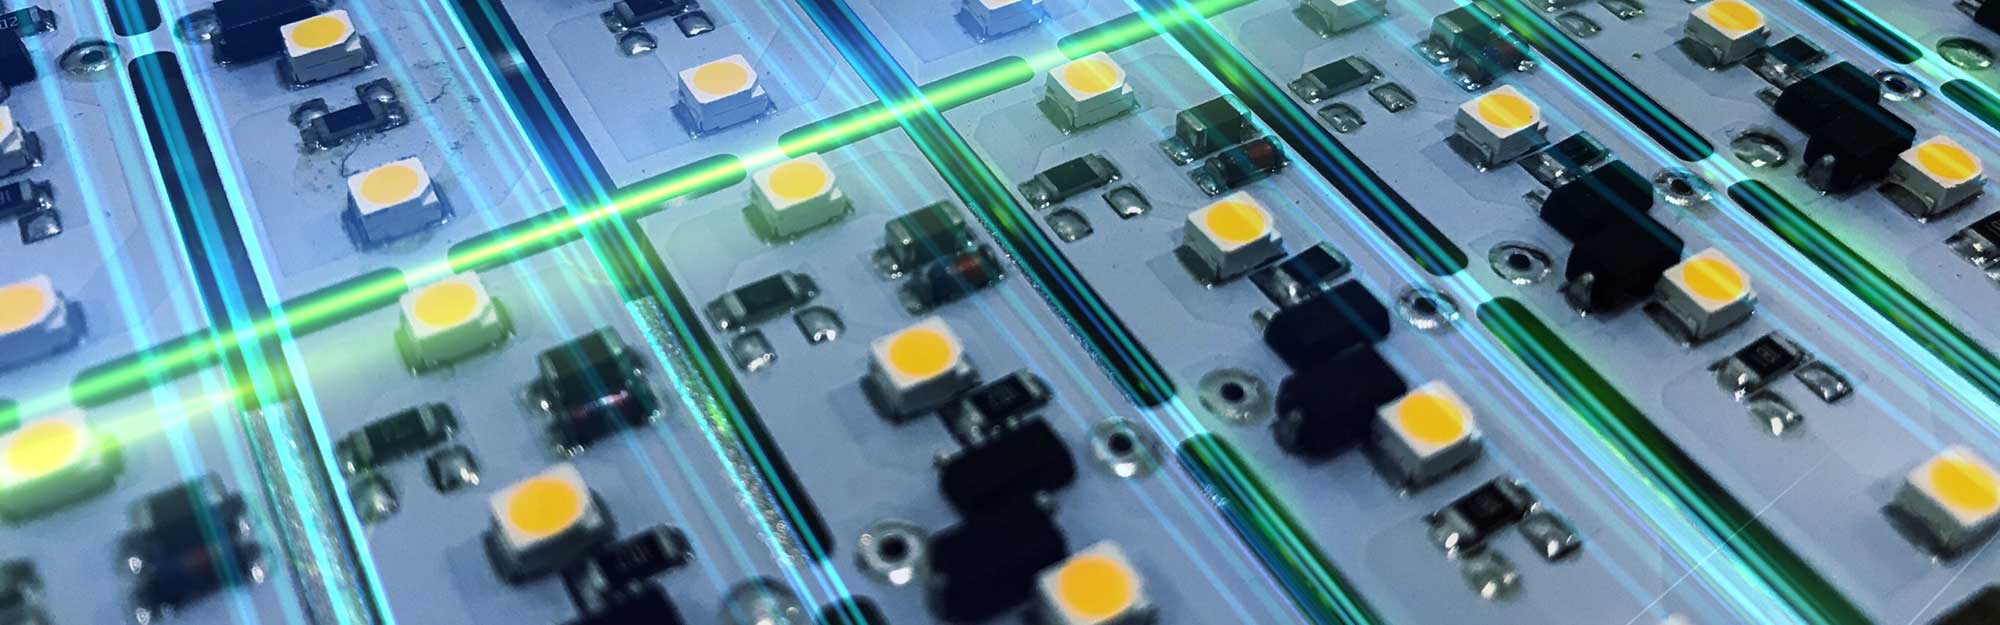 printed circuit boards 2